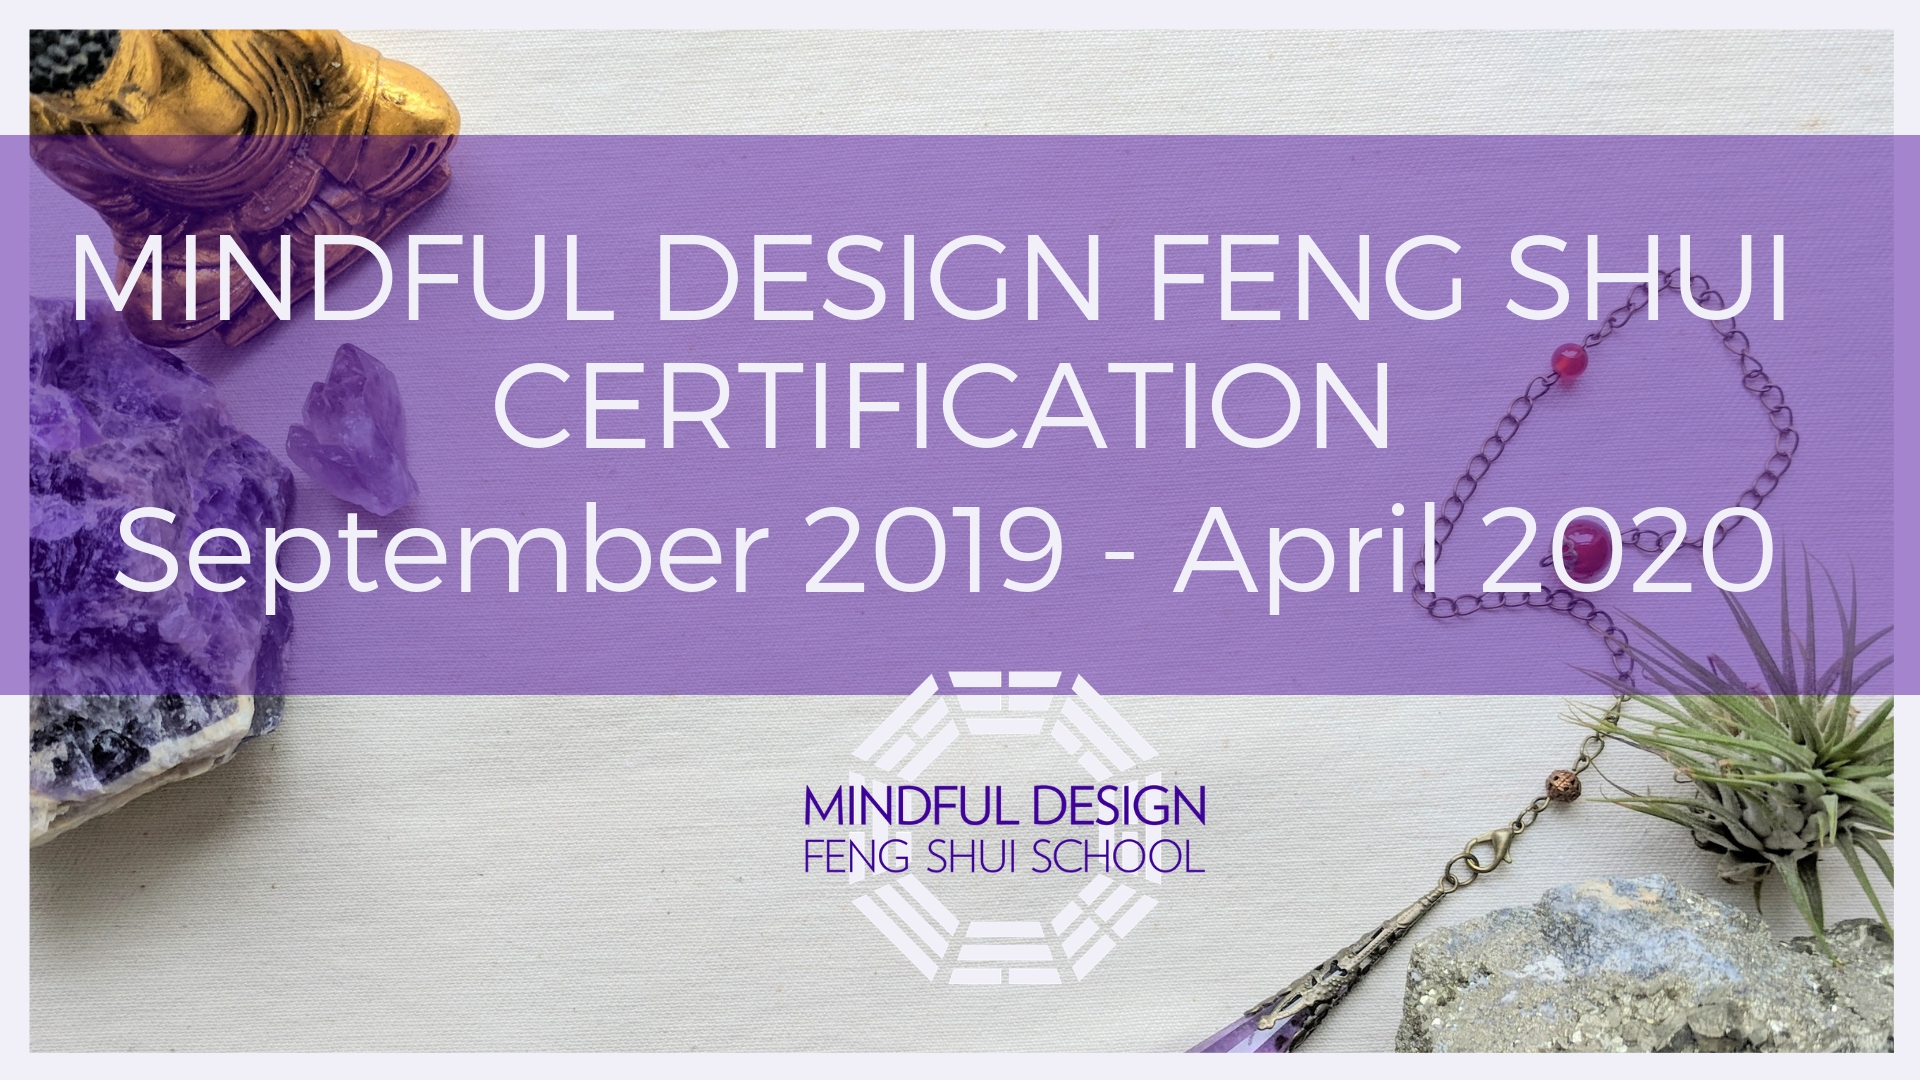 Class Of Spring 2020 Mindful Design Feng Shui Certification Program